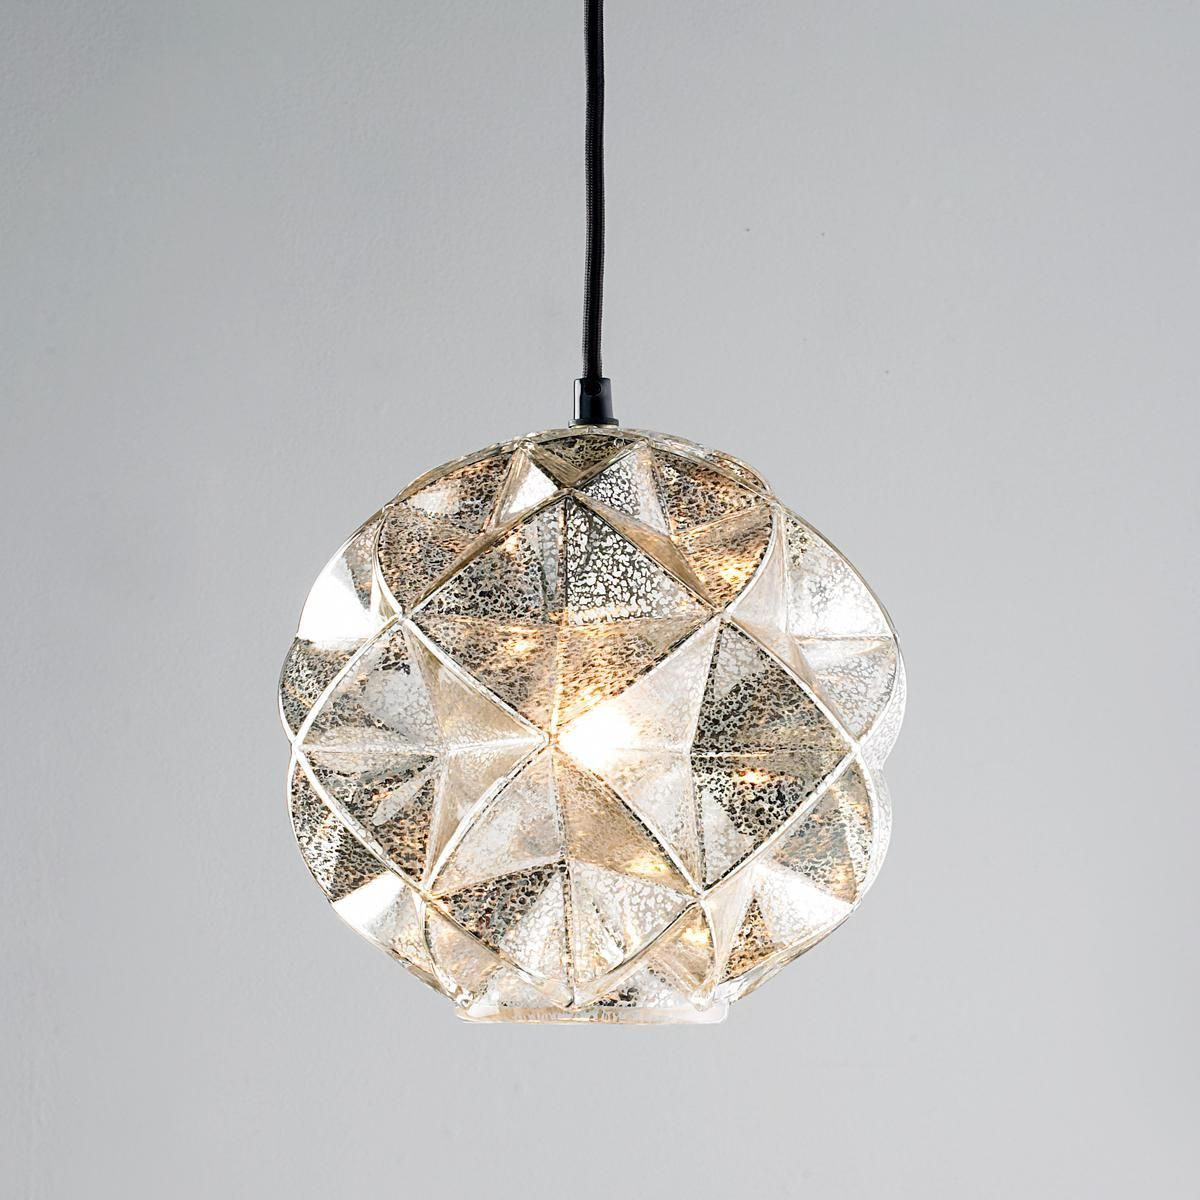 Mercury Glass Pendant Light Fixture Endearing Mercury Glass Geodesic Dome Pendant Light  Mercury Glass Pendant Design Inspiration